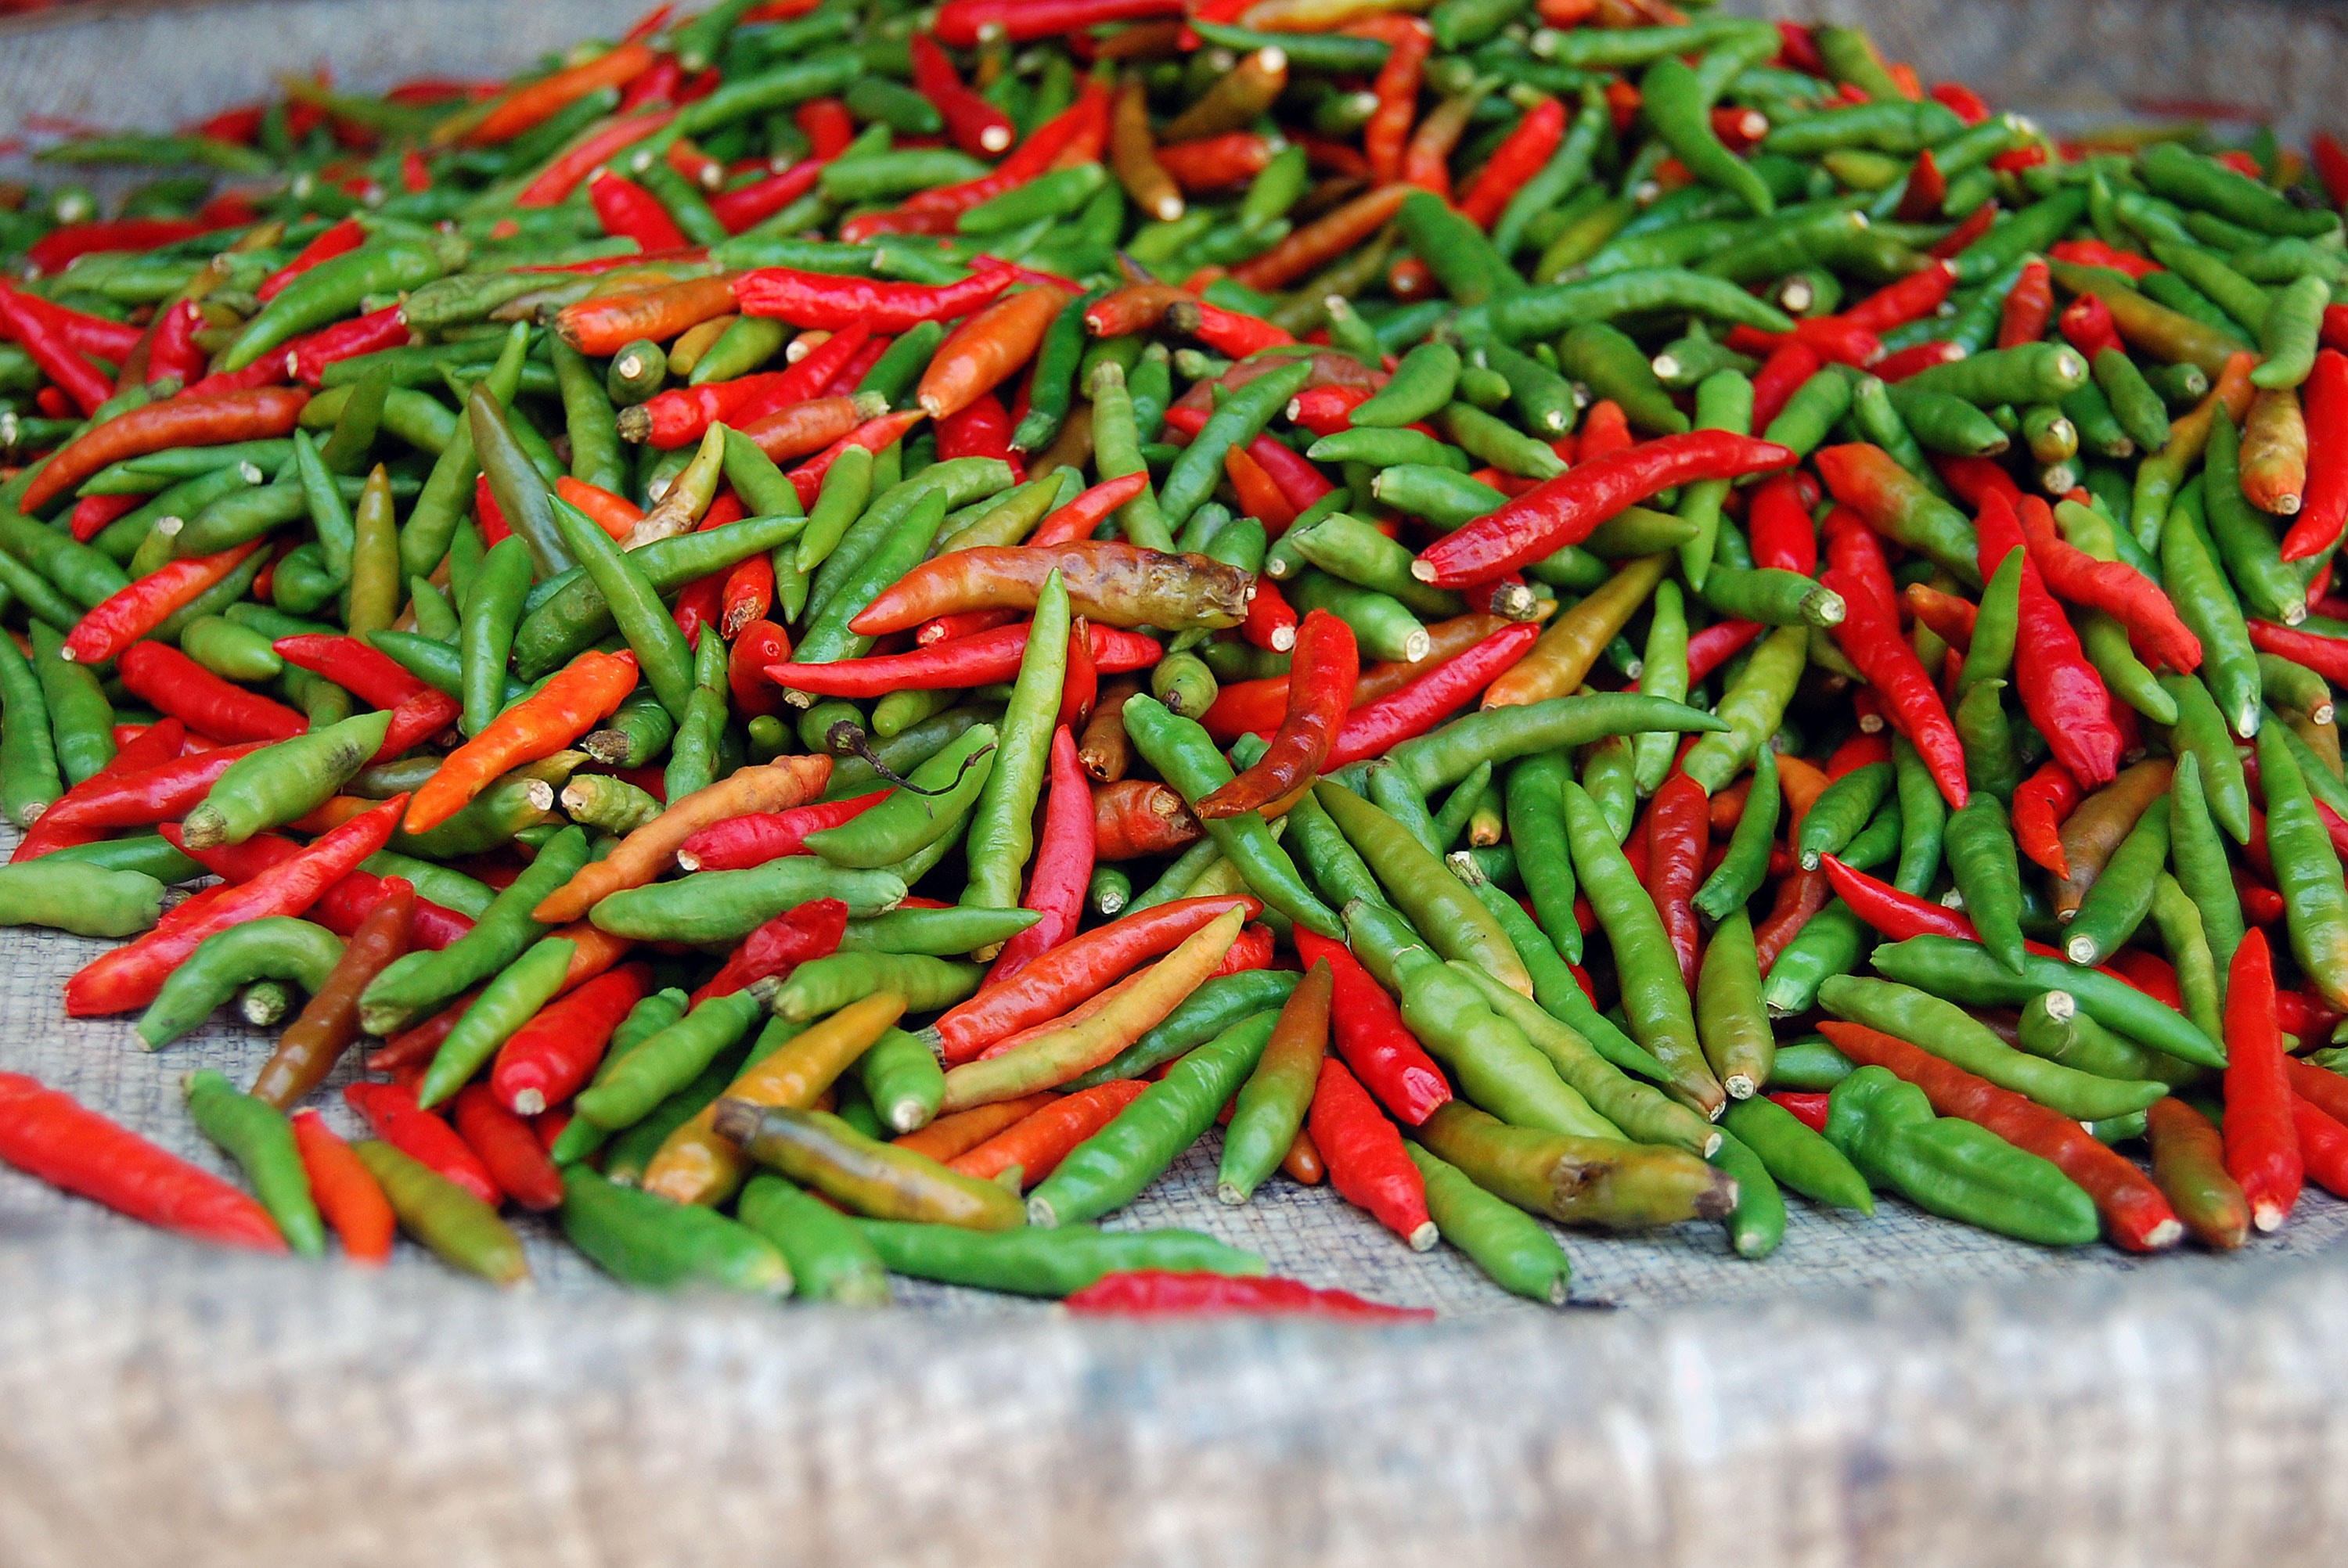 Fuck this hot ass pepper New Study Finds That Shoving A Hot Pepper In Ass Might Be Healthy